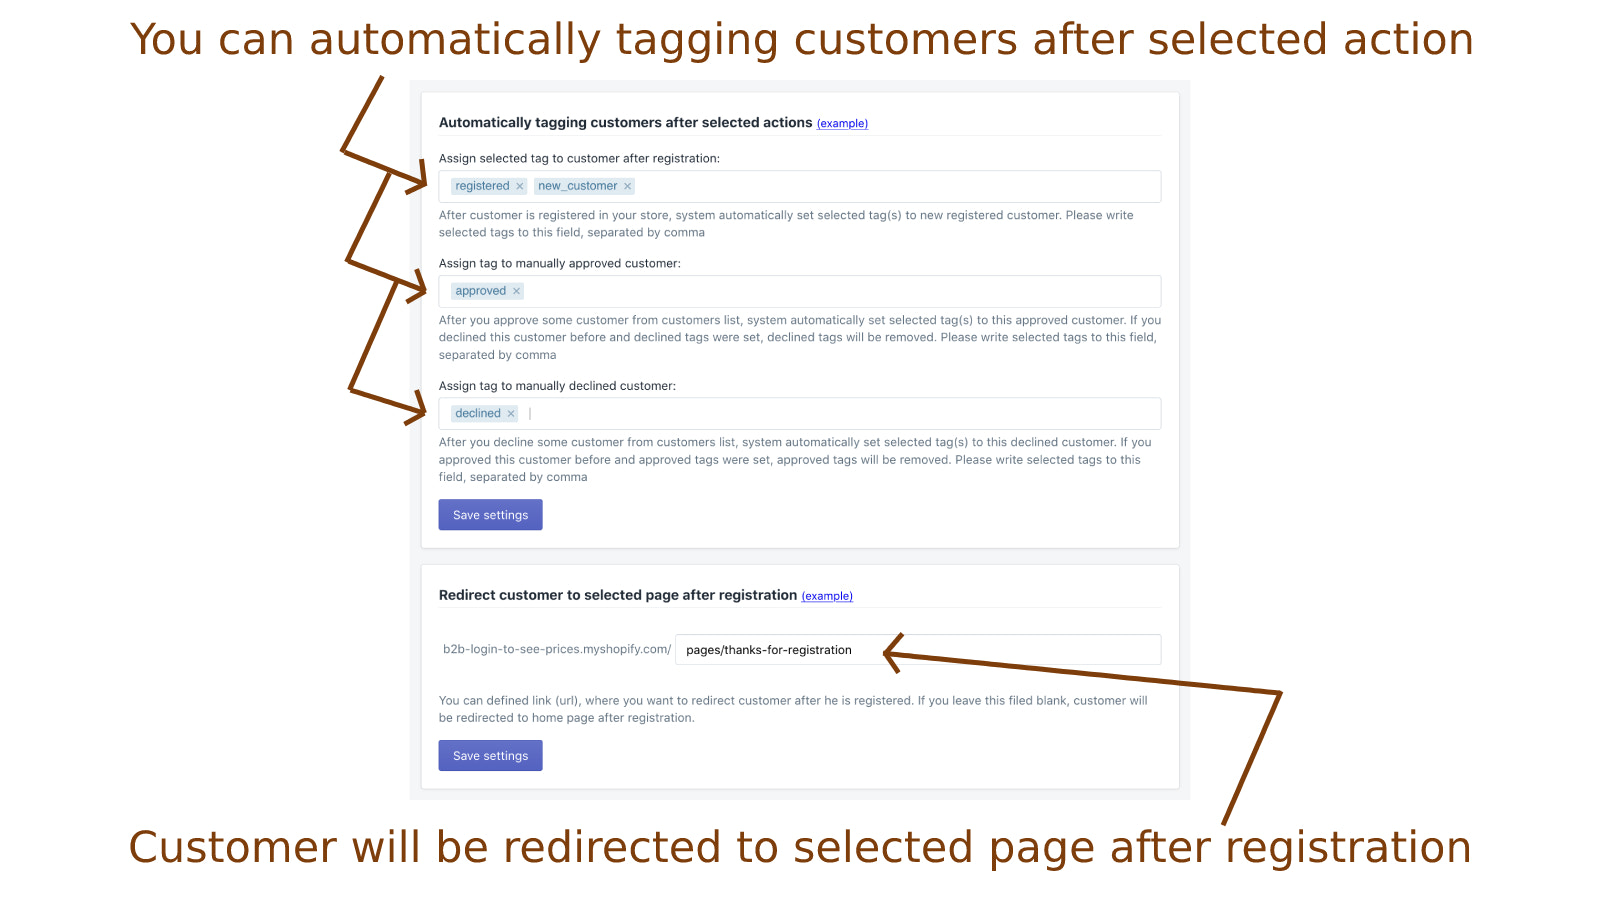 Auto tagging customers + redirecting customers after register